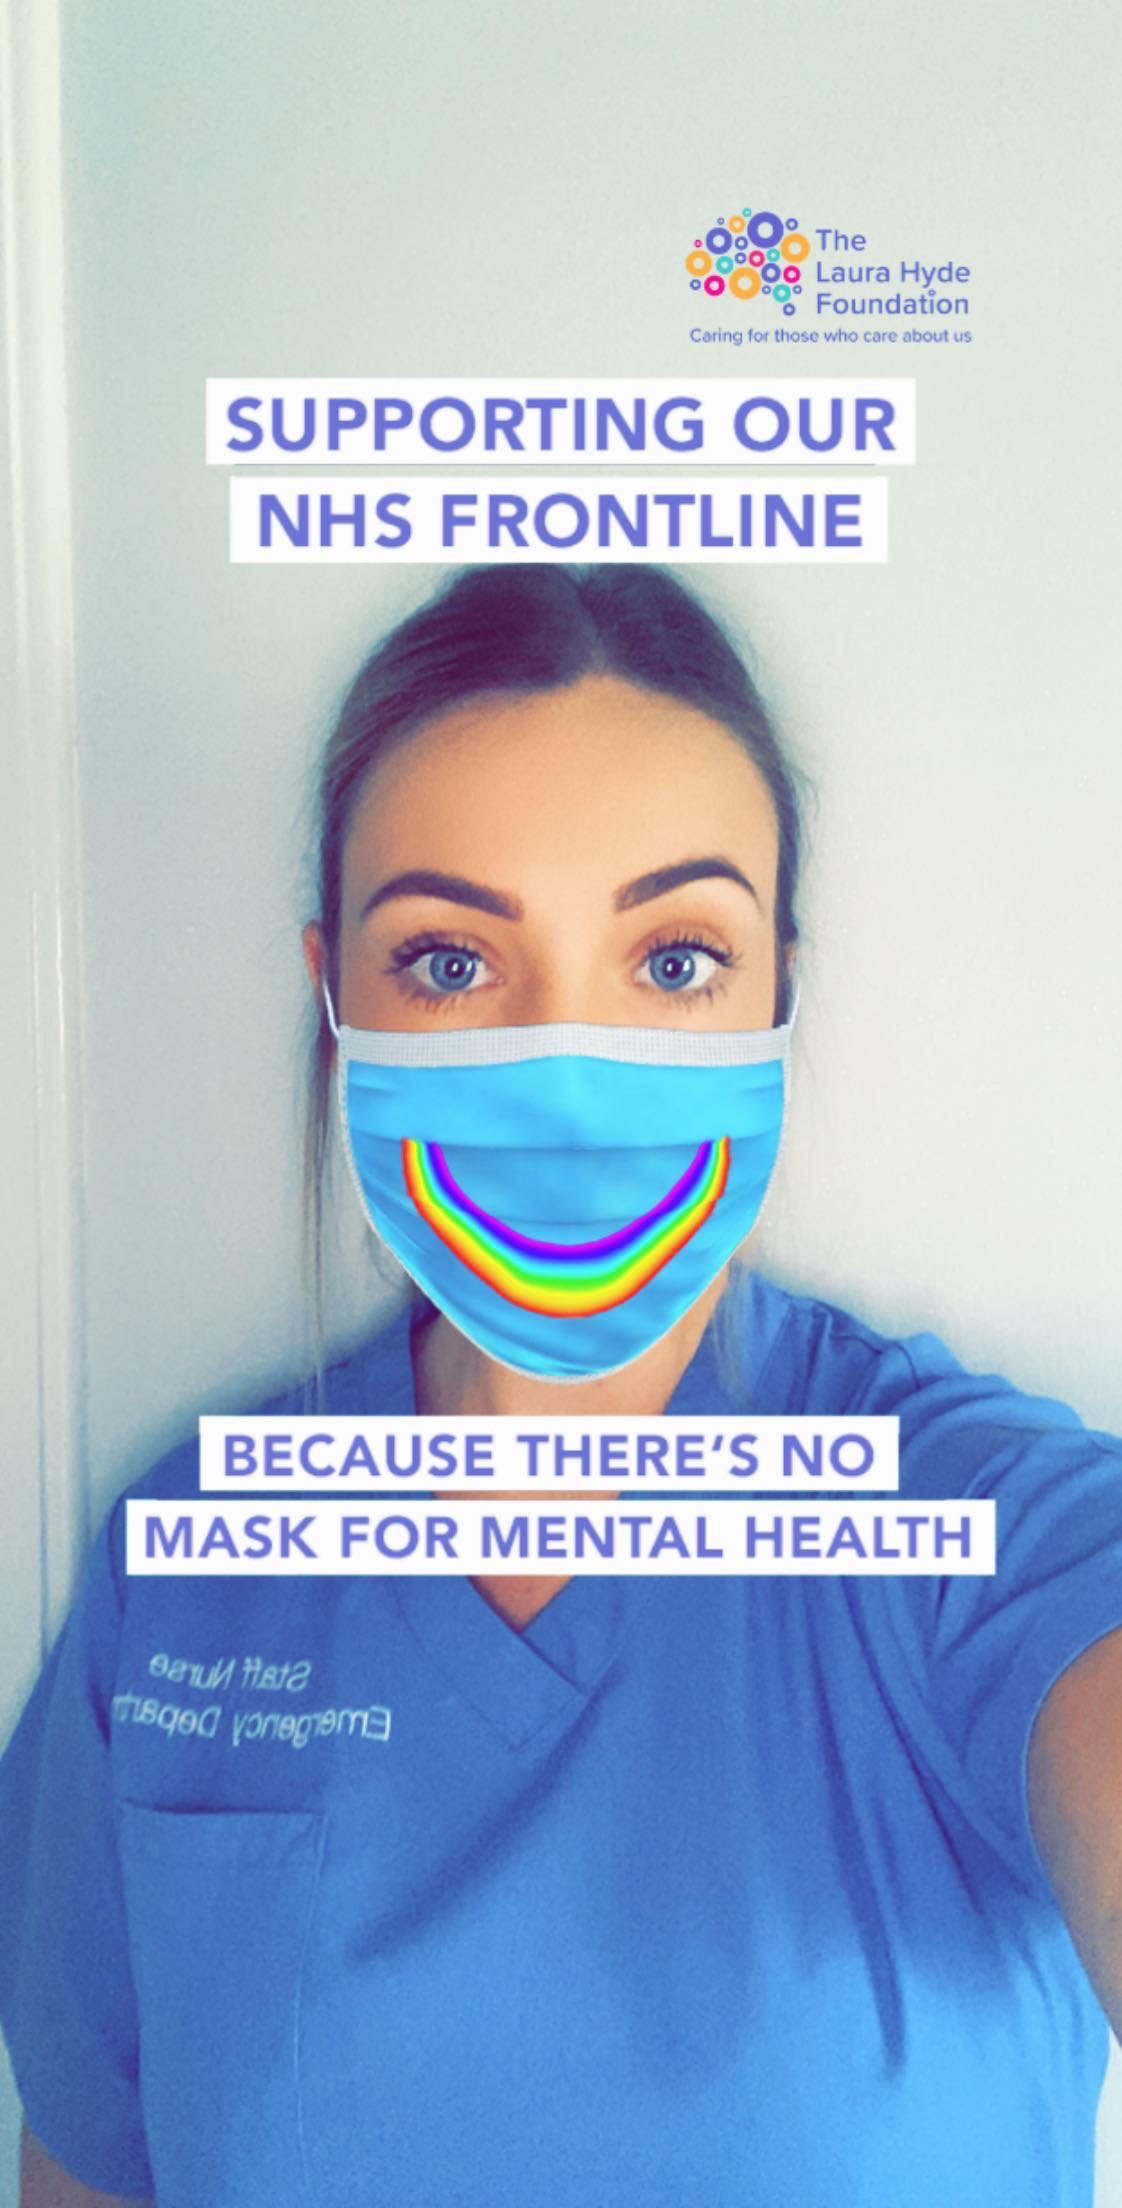 No mask for mental health: campaign includes virtual mask filter